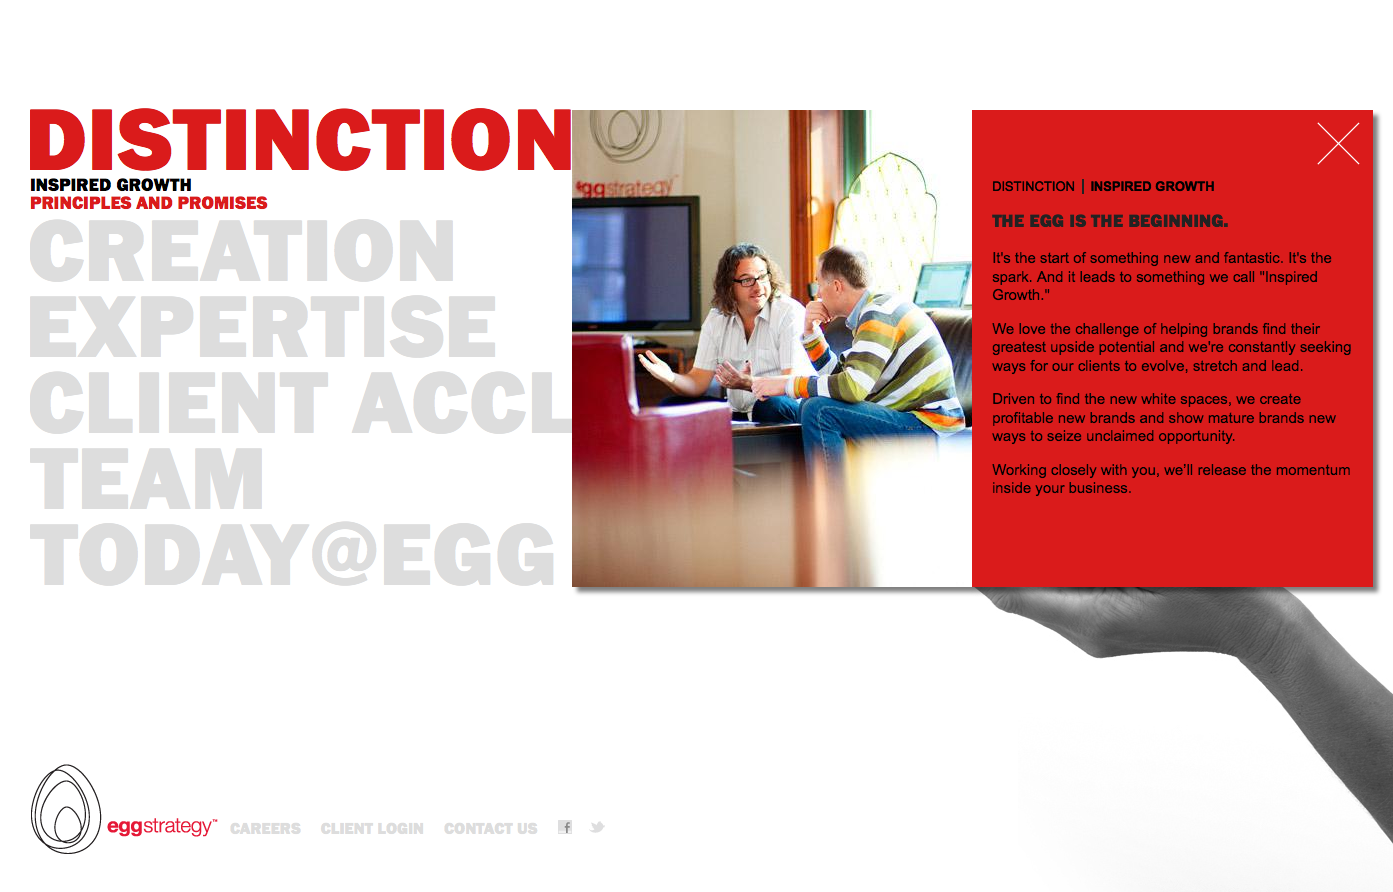 Project image 2 for Website, Egg Strategy